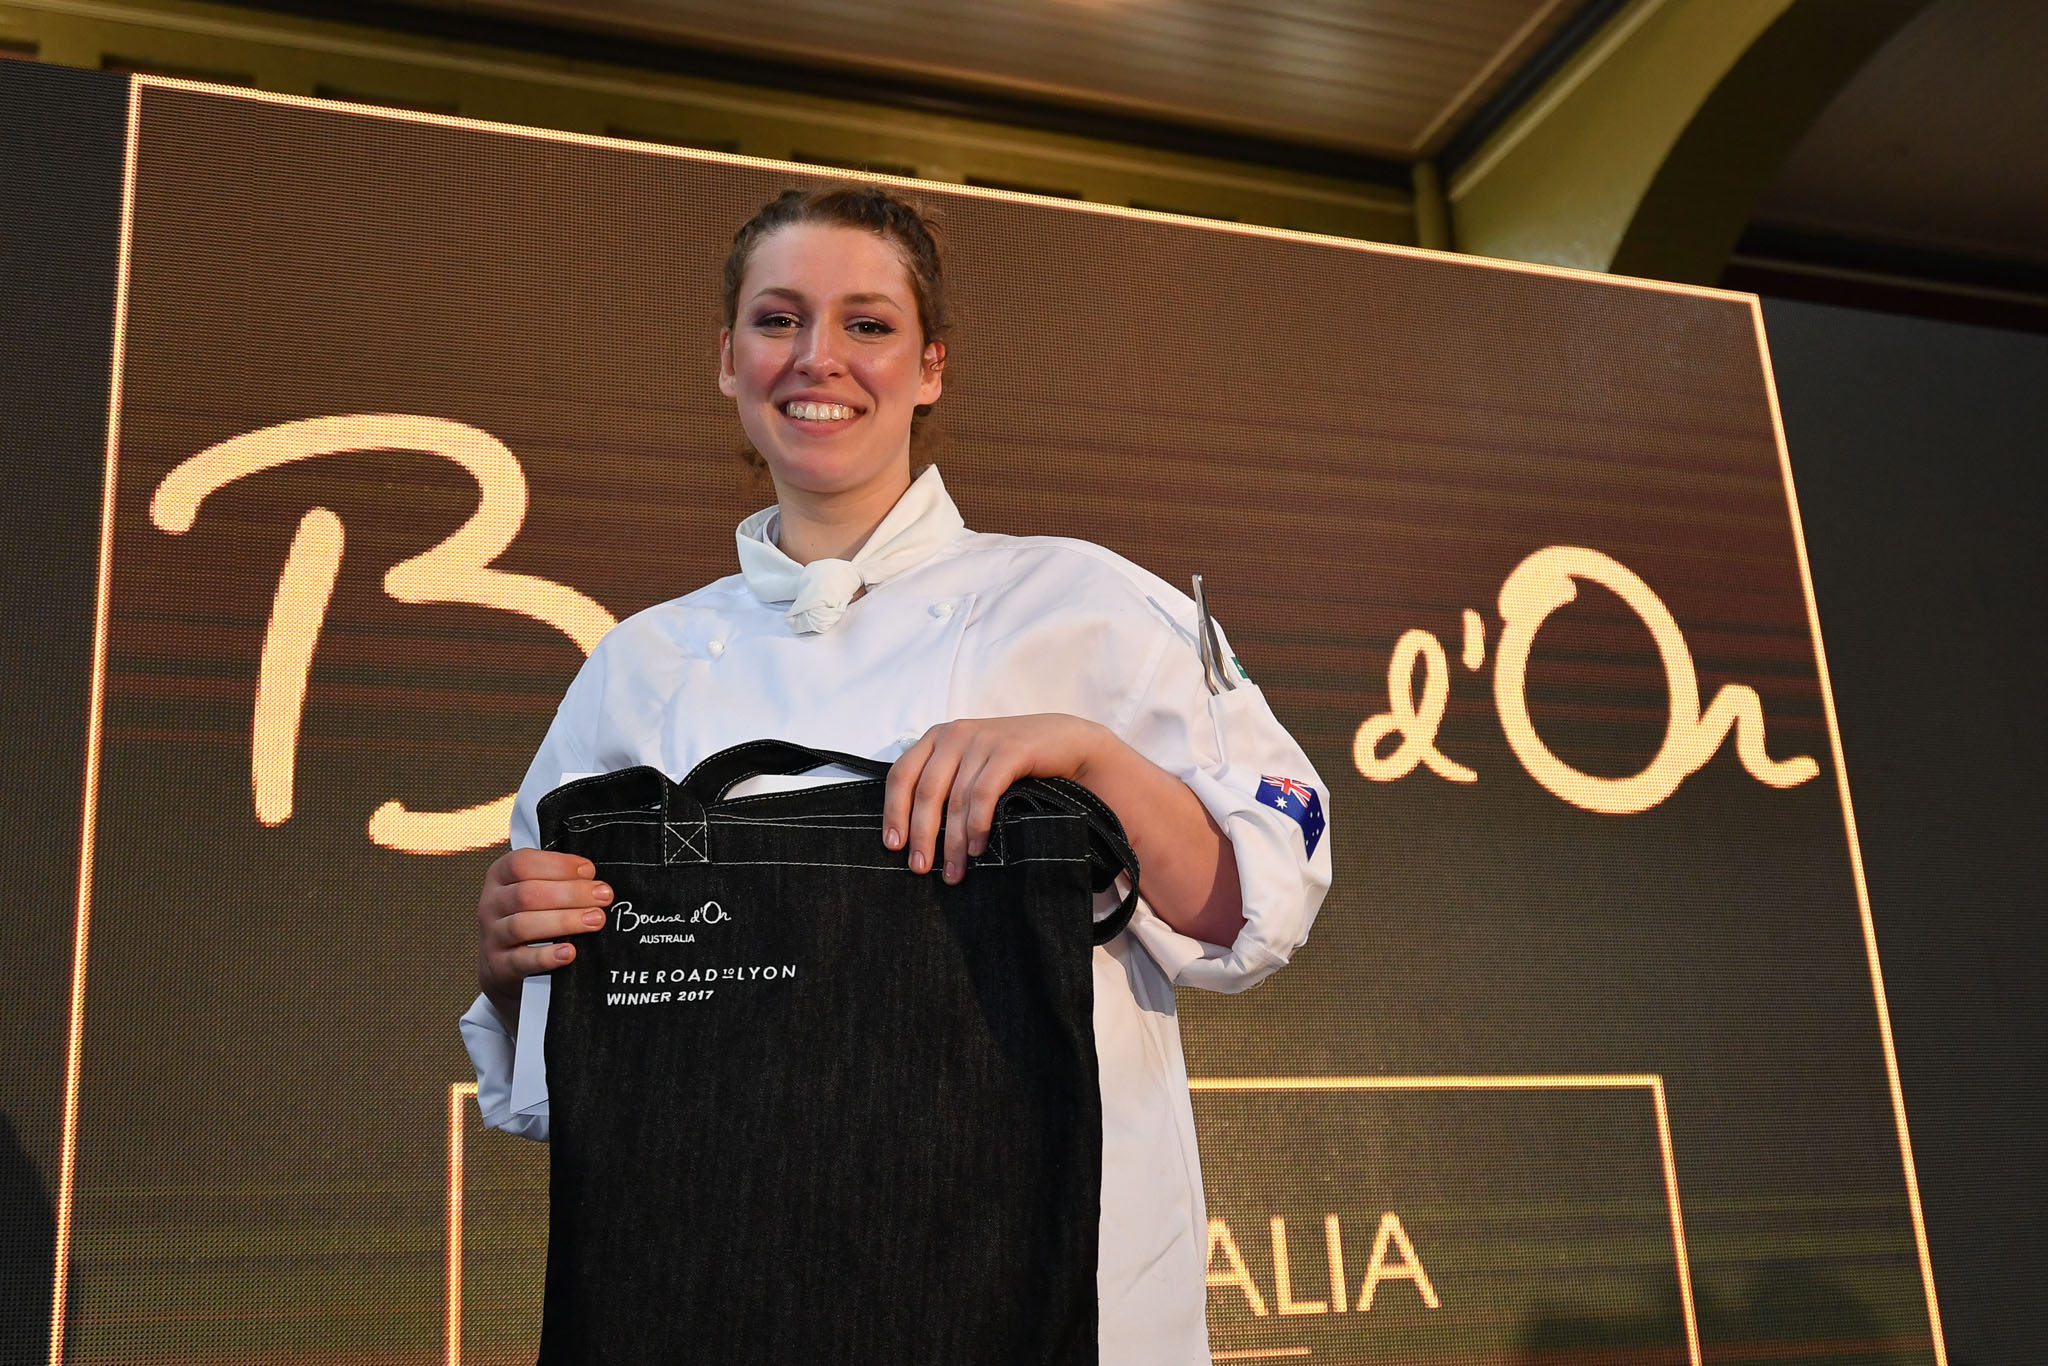 Melbourne, 30 May 2017 - Laura Skvor commis chef assisting Michael Cole of the Georgie Bass Café & Cookery in Flinders wins the award for the best commis chef at the Australian selection trials of the Bocuse d'Or culinary competition held during the Food Service Australia show at the Royal Exhibition Building in Melbourne, Australia. Photo Sydney Low